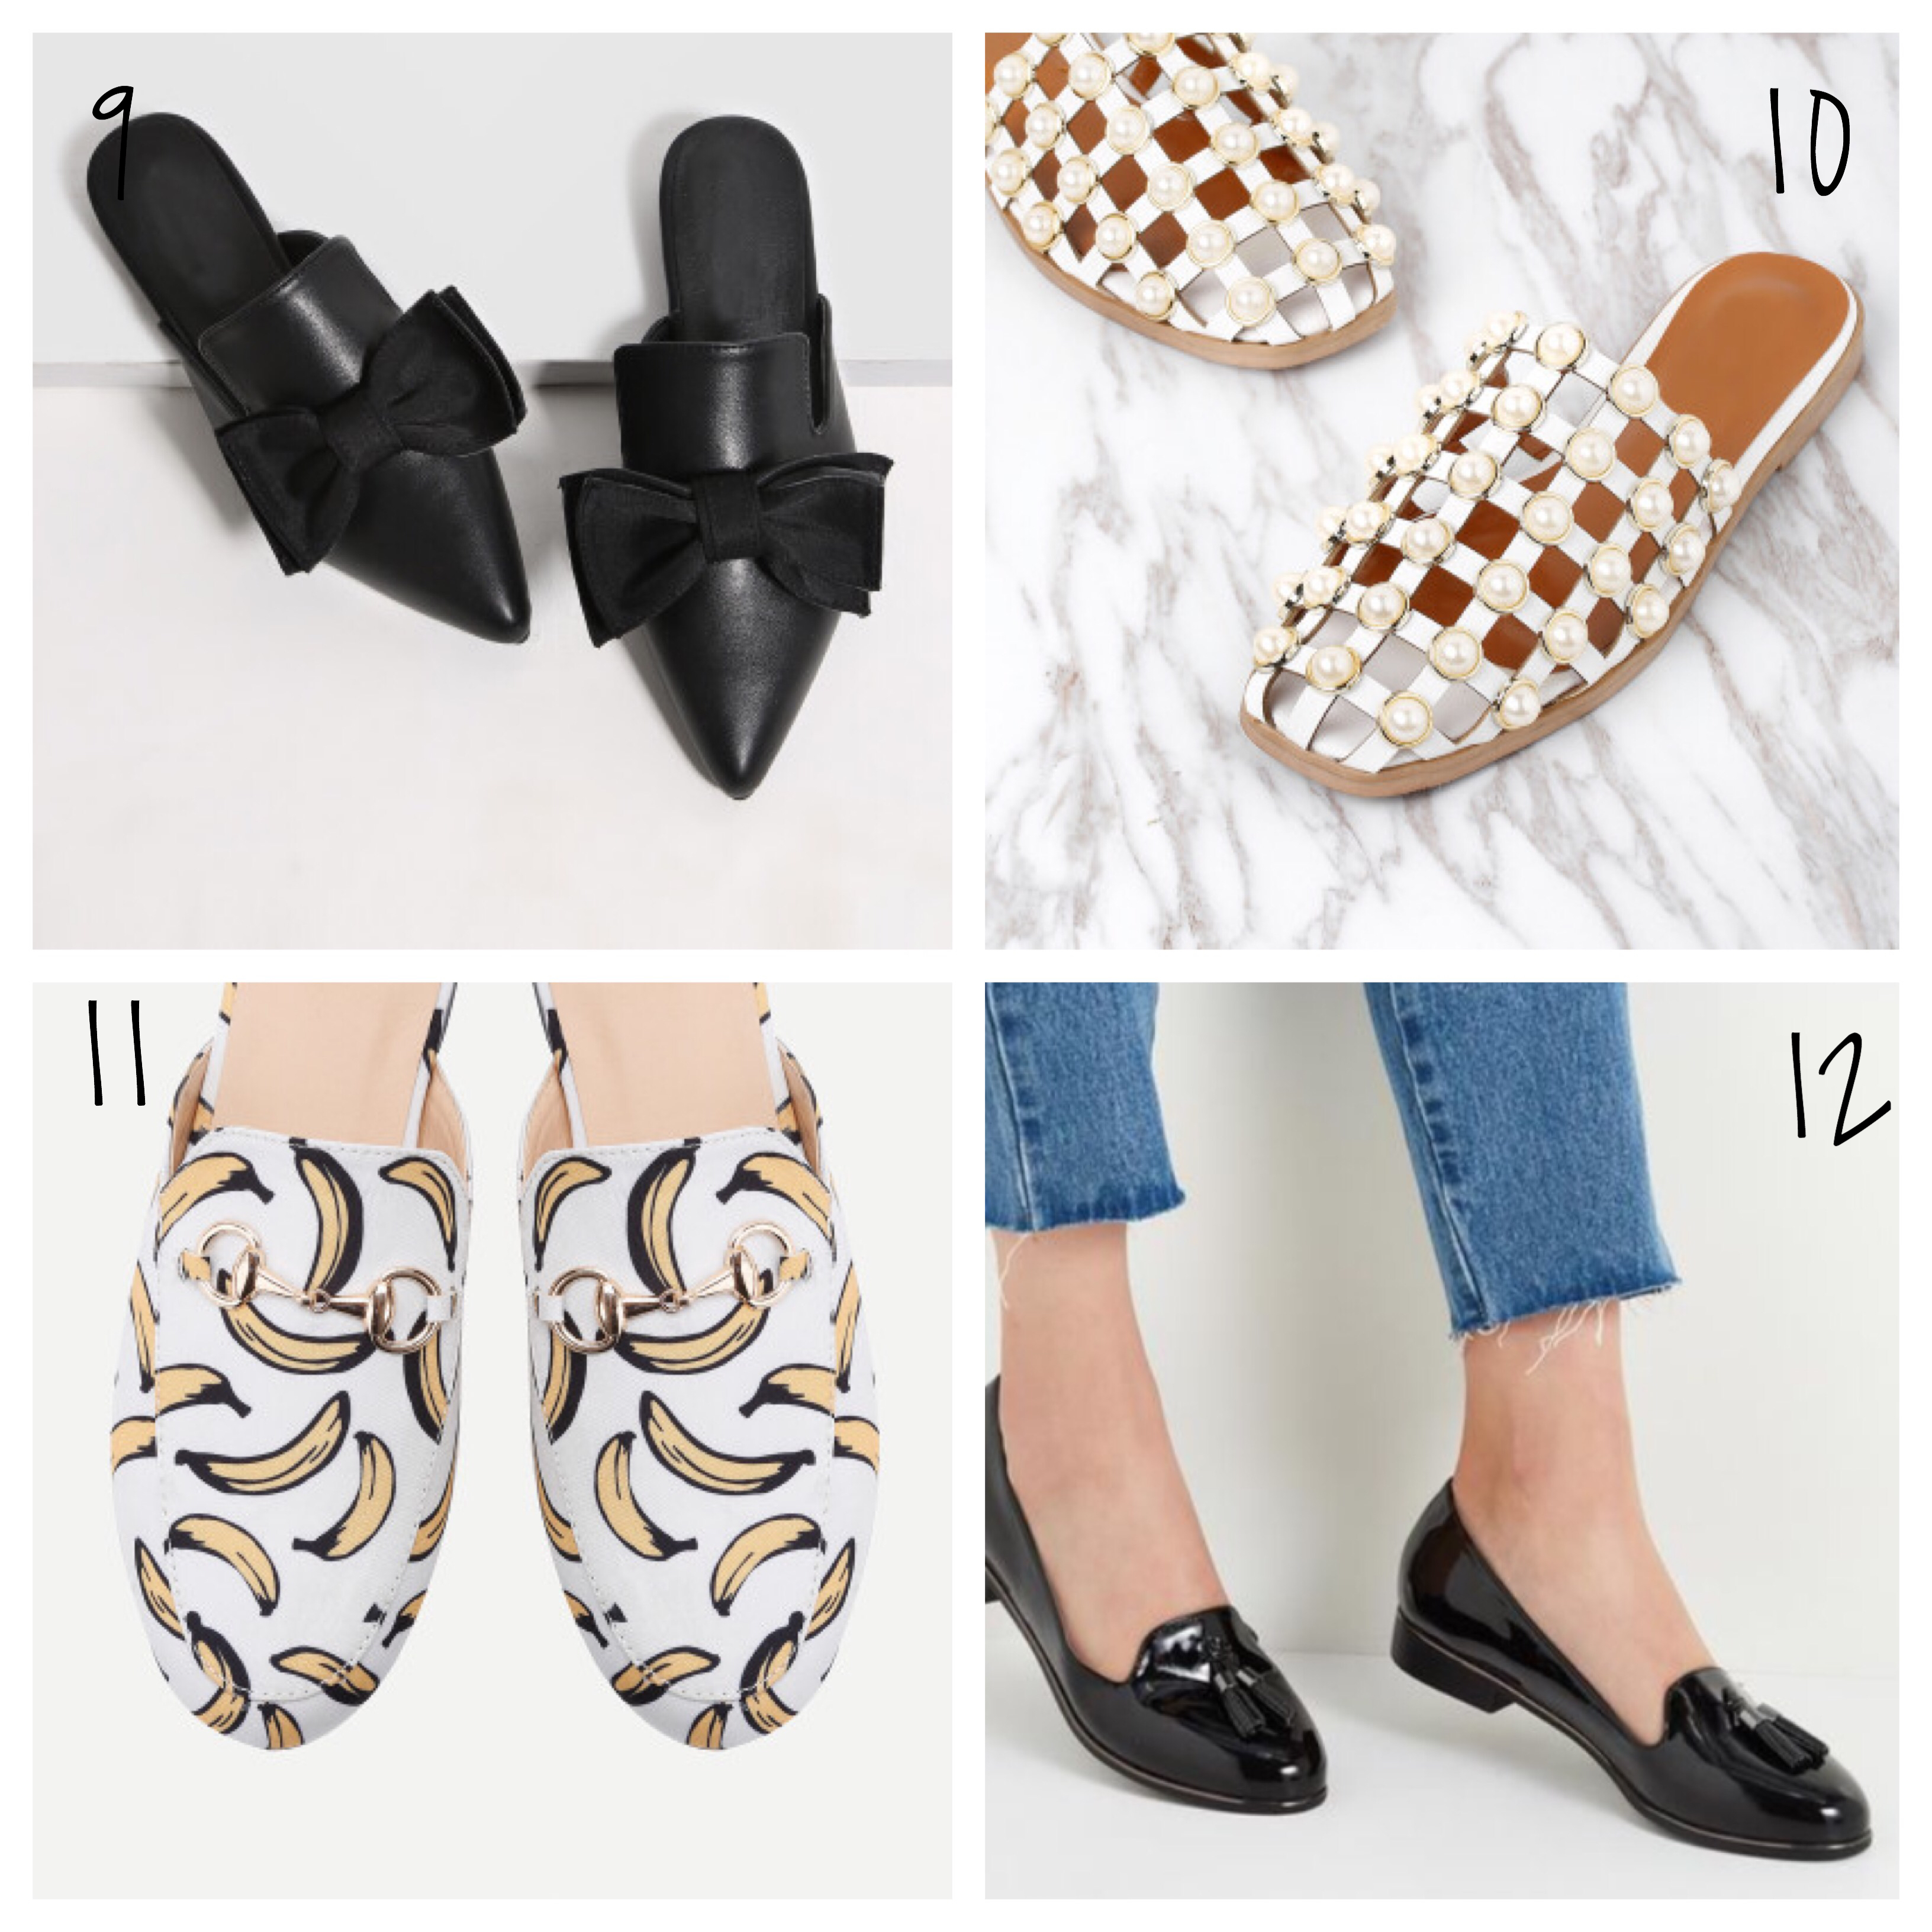 Slip on shoes affordable blogger style